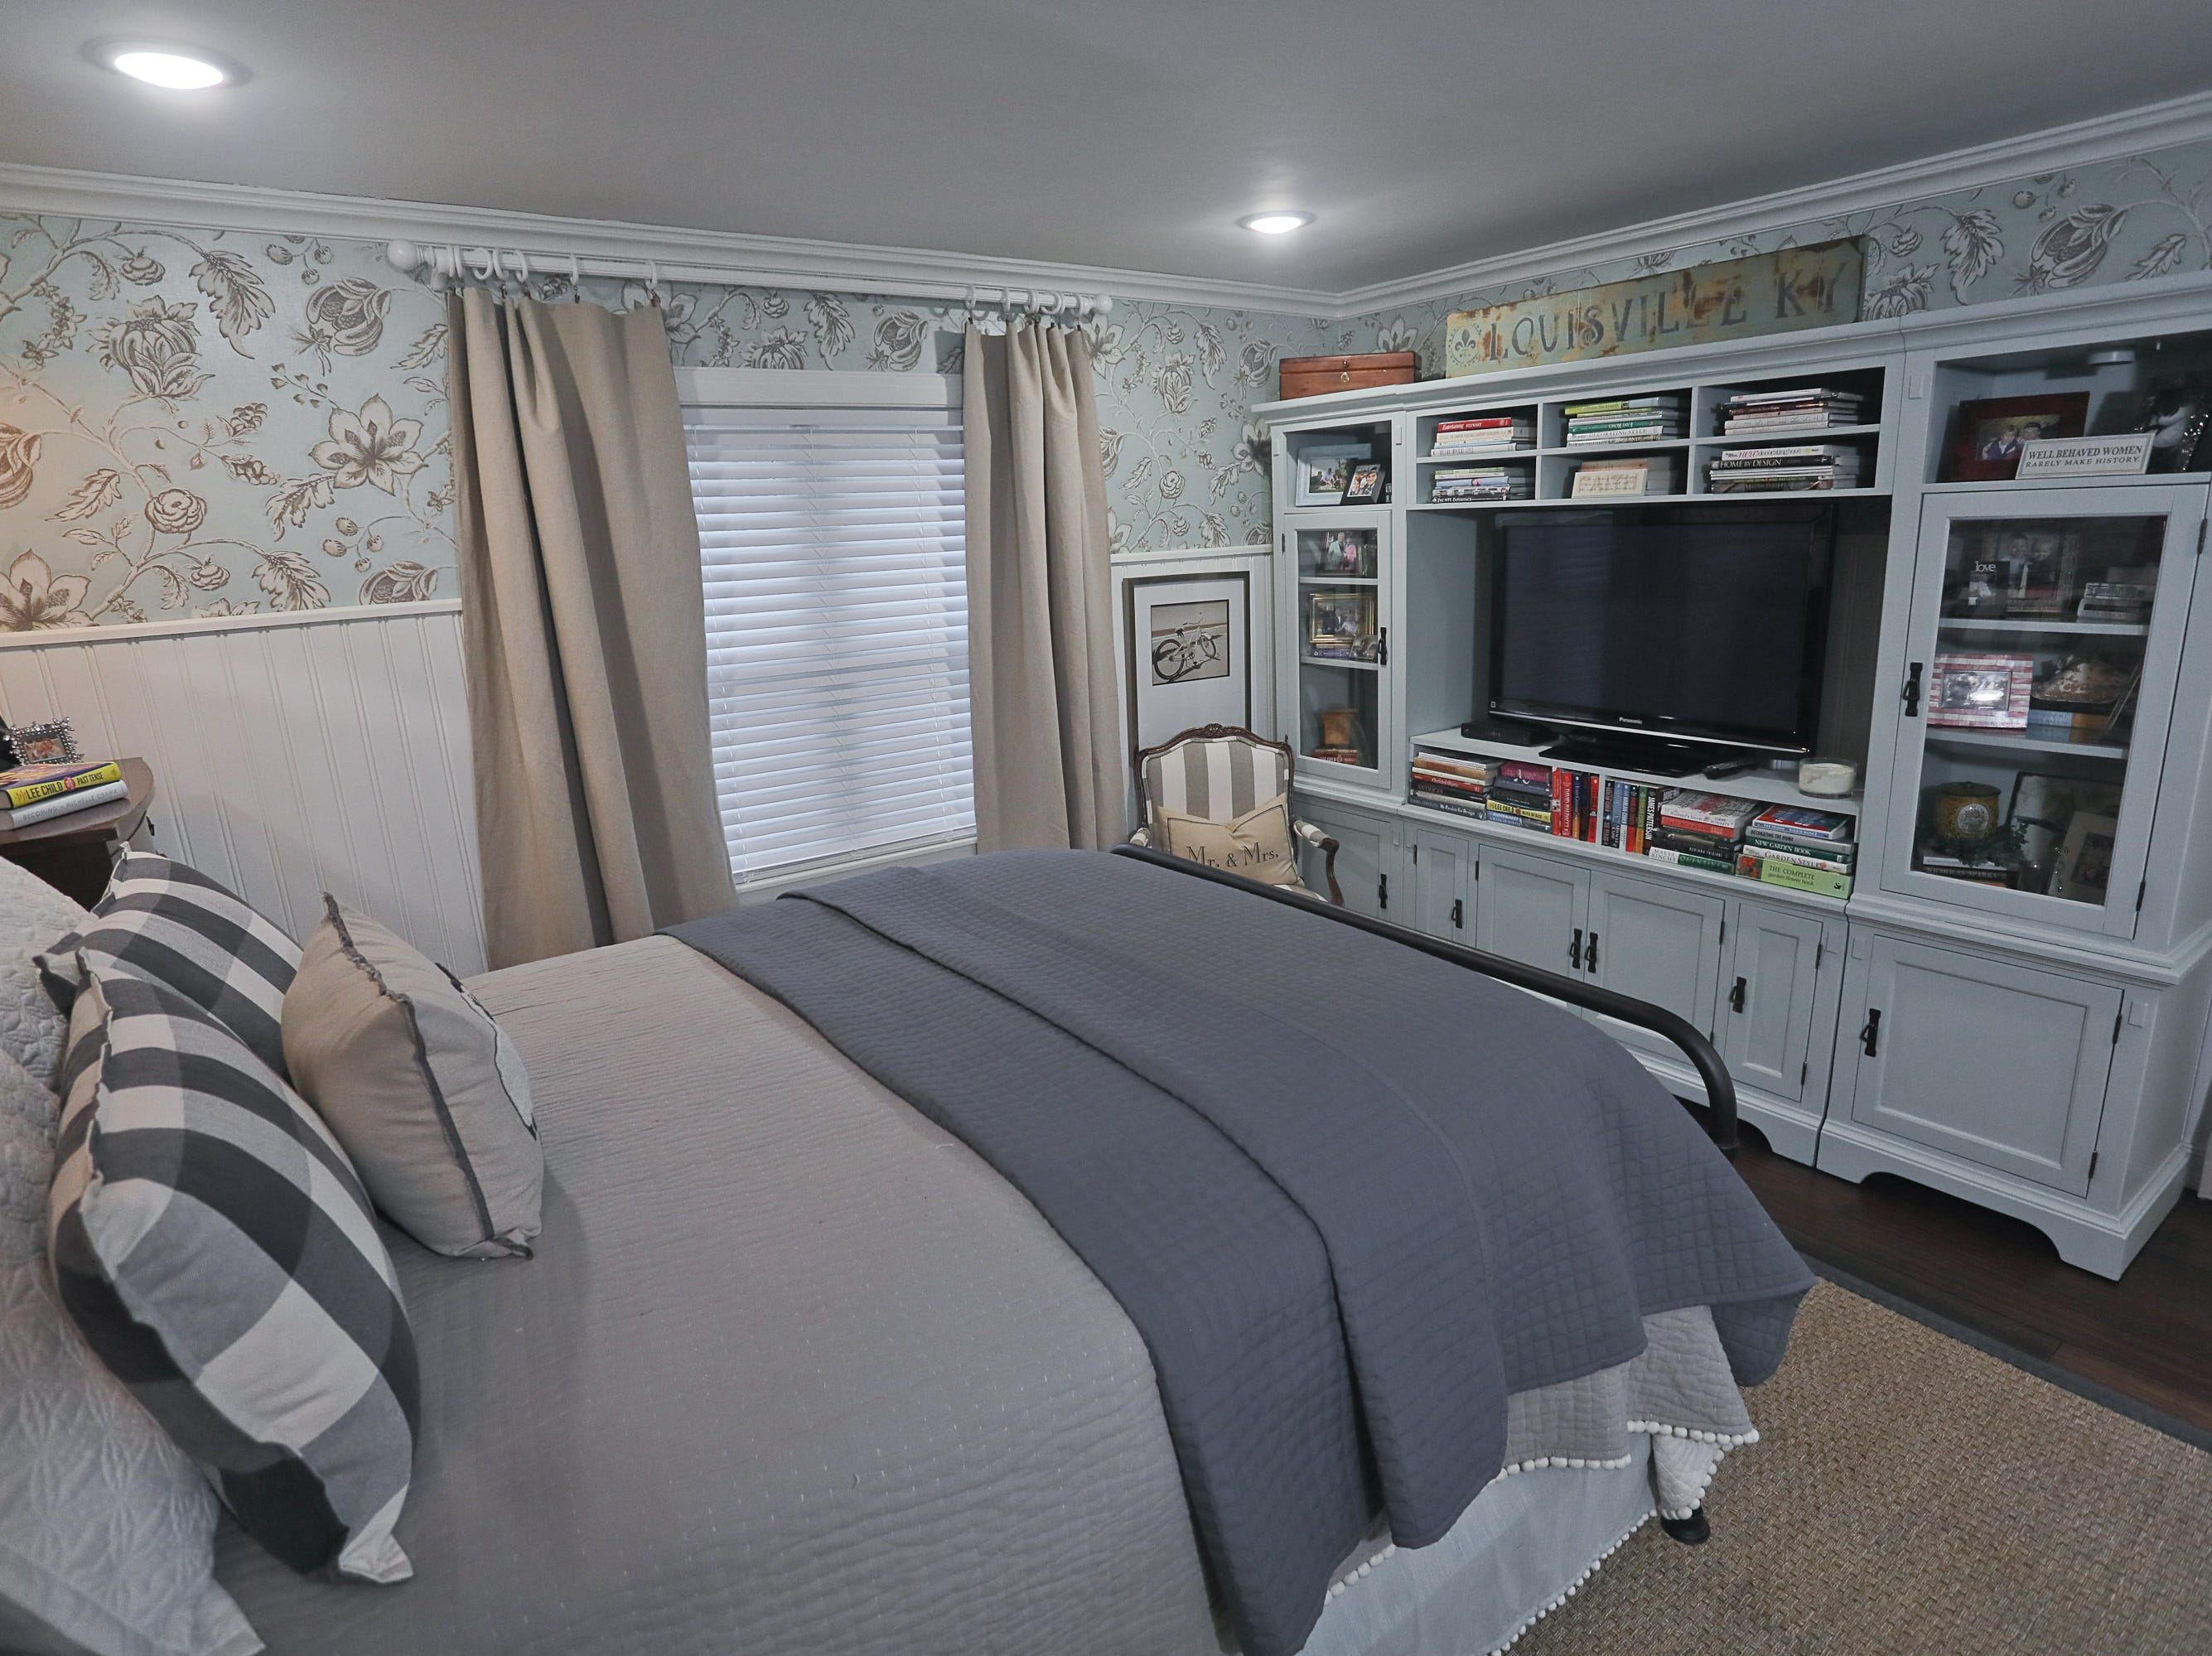 The owner's bedroom at the home of Kelli Lorenzen in Louisville, KY. Feb. 12, 2019